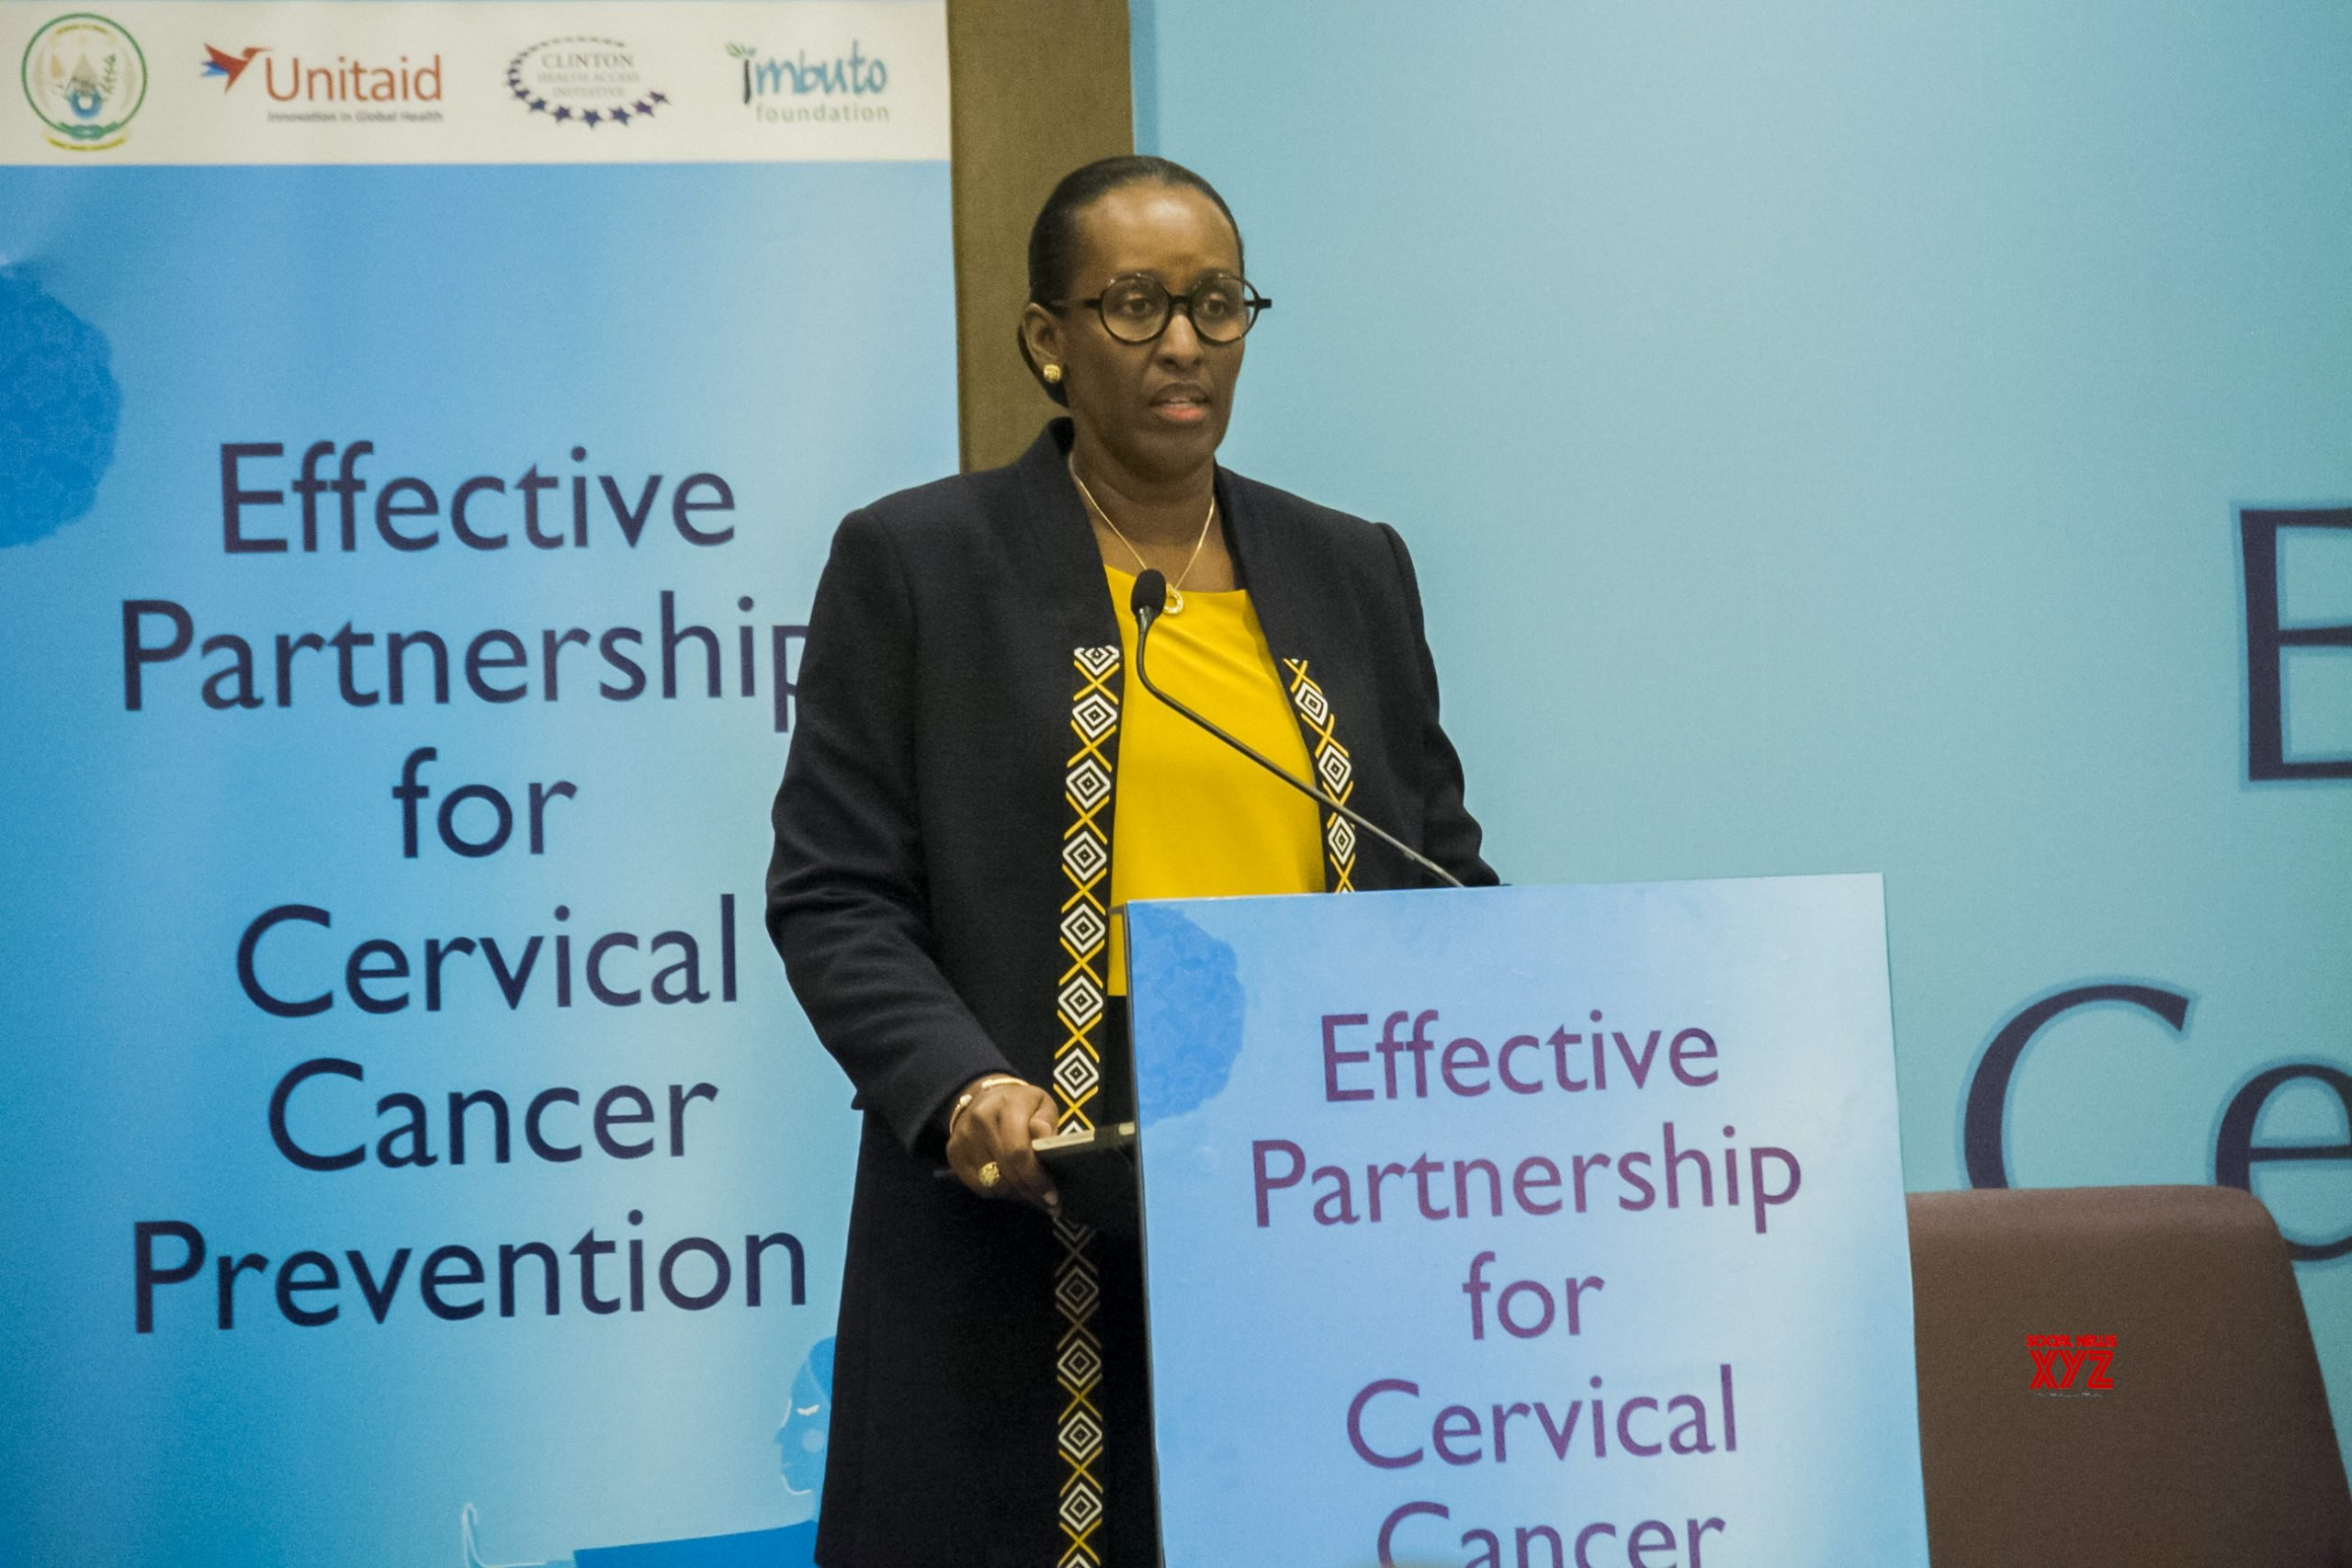 RWANDA - KIGALI - AIDS CONFERENCE - CERVICAL CANCER PREVENTION #Gallery